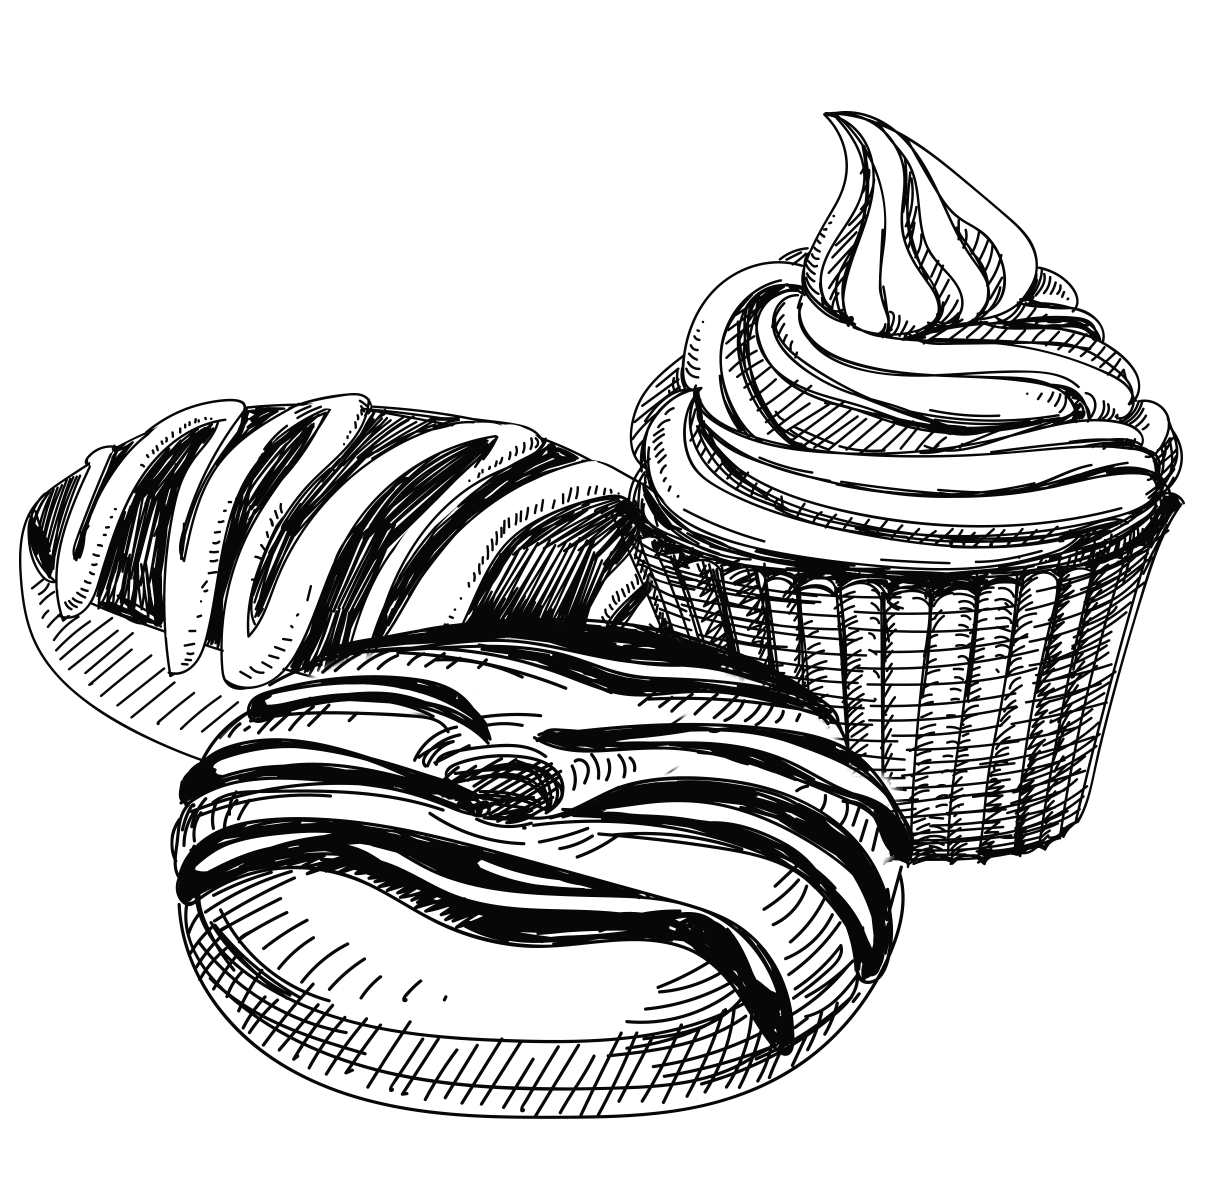 Baked goods clipart black and white, Baked goods black and.